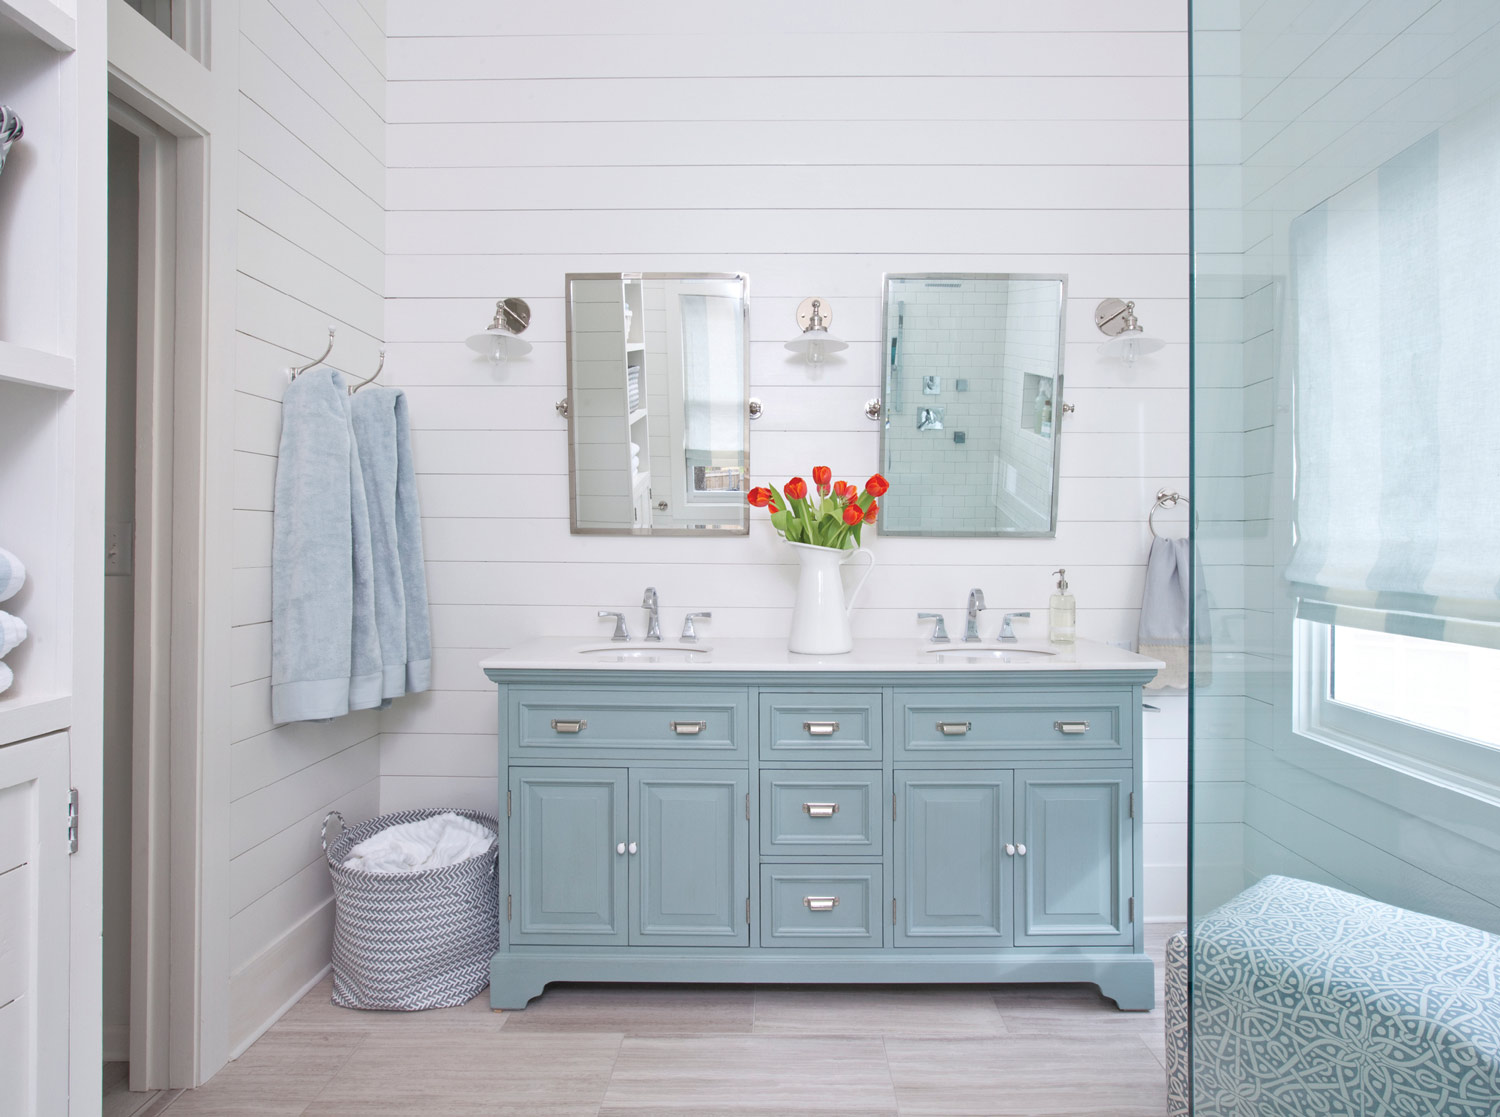 """The aqua color on the vanity and barn doors is very serene, while the white walls keep things fresh,"" says designer Lisa Gabrielson."